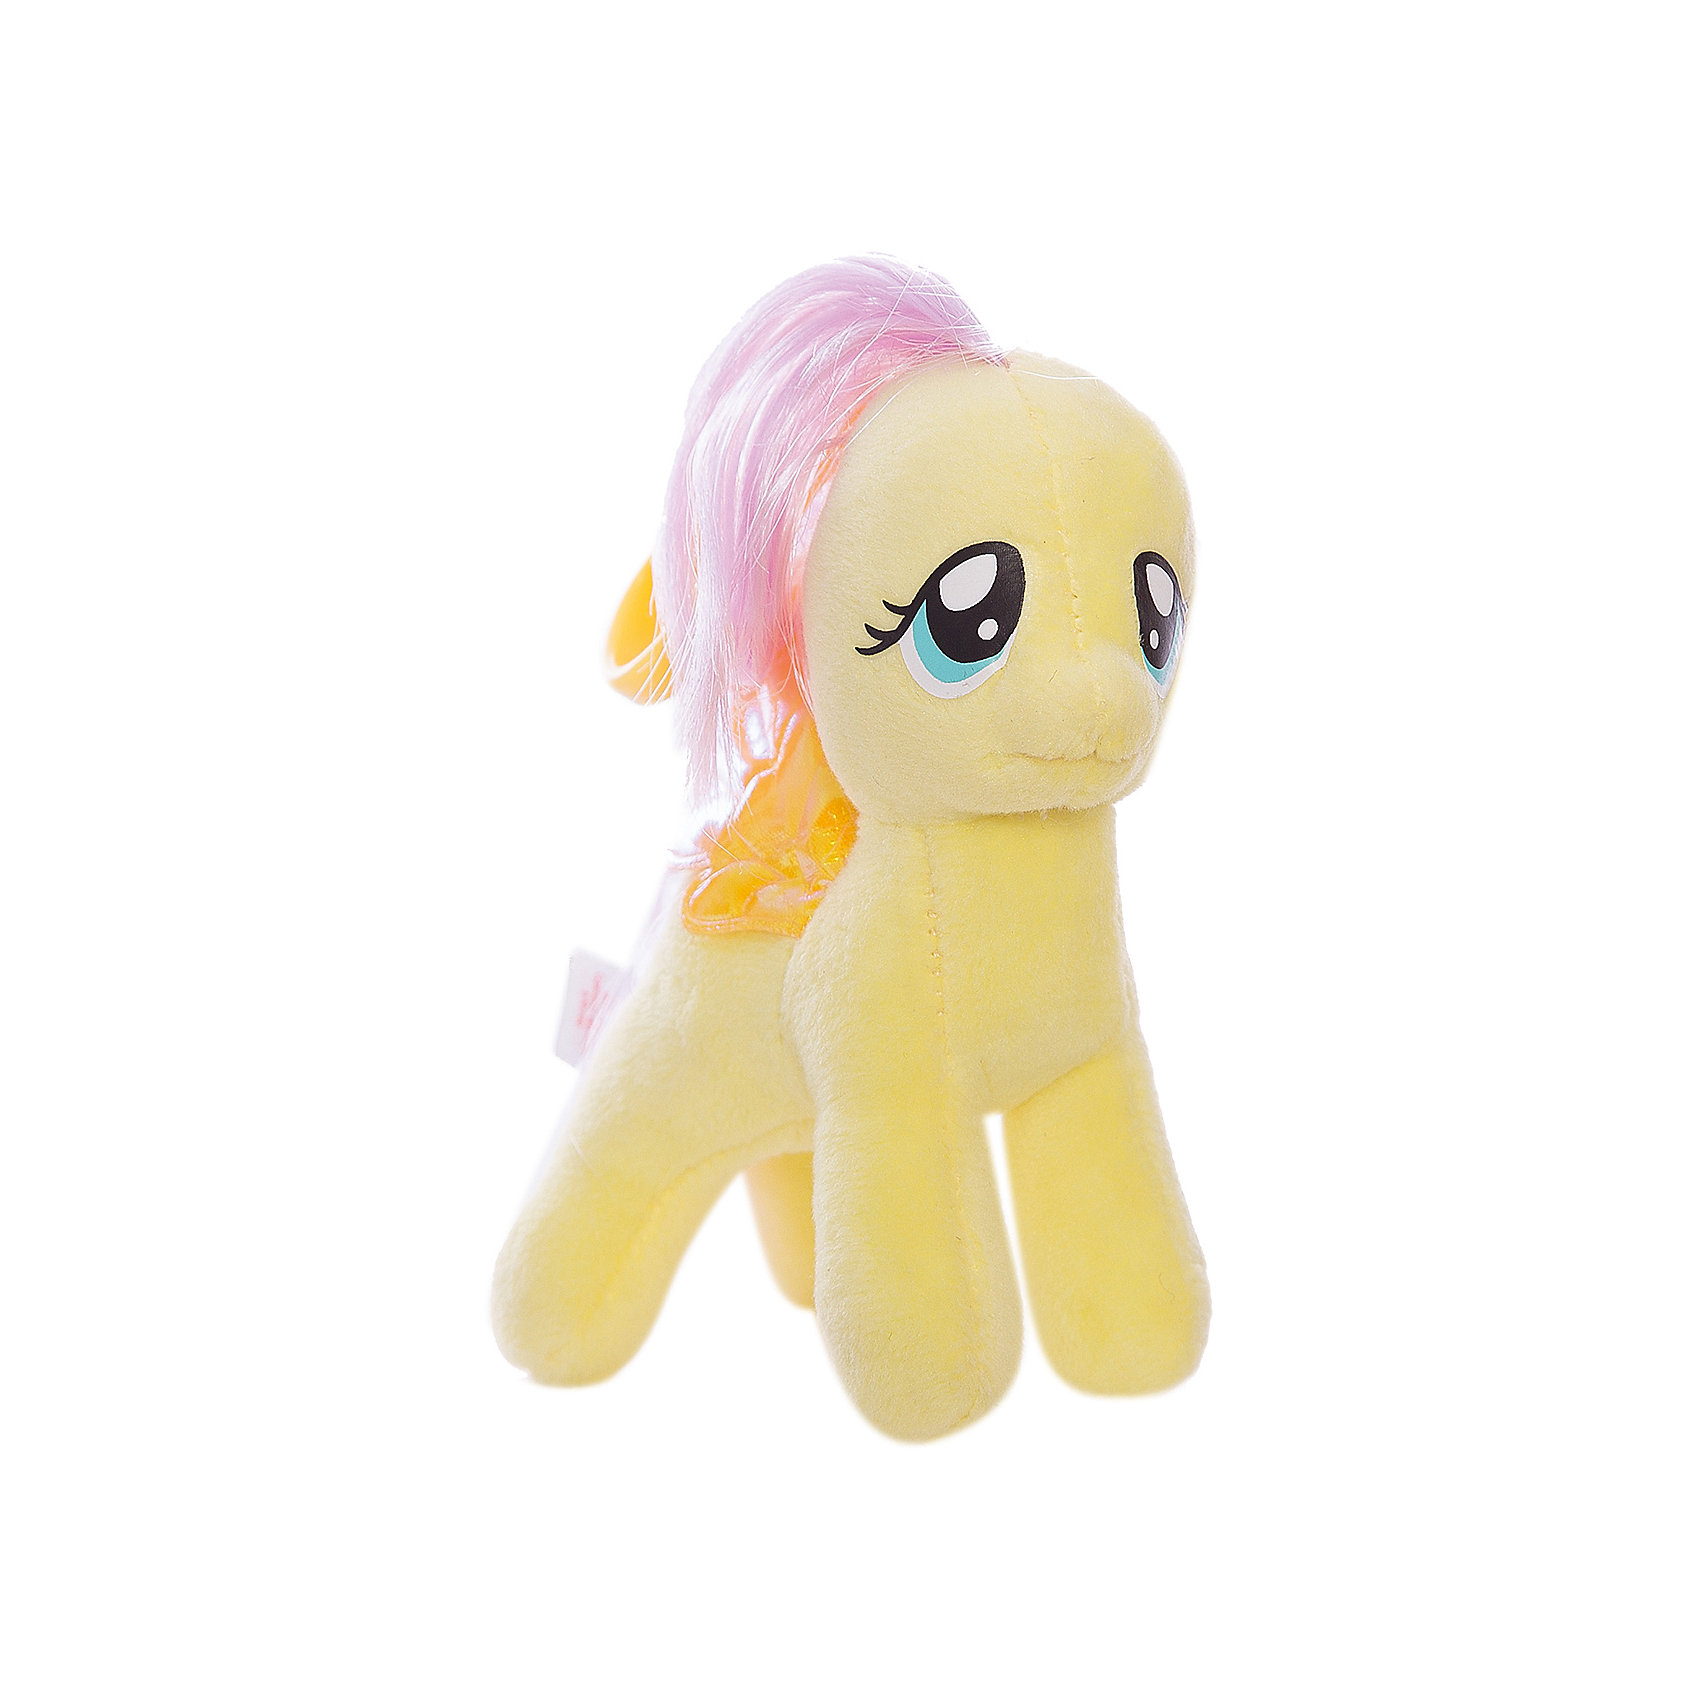 Ty Пони Fluttershy на брелке, 15 см, My little Pony, Ty ty пони эпл джек на брелке 15 см my little pony ty